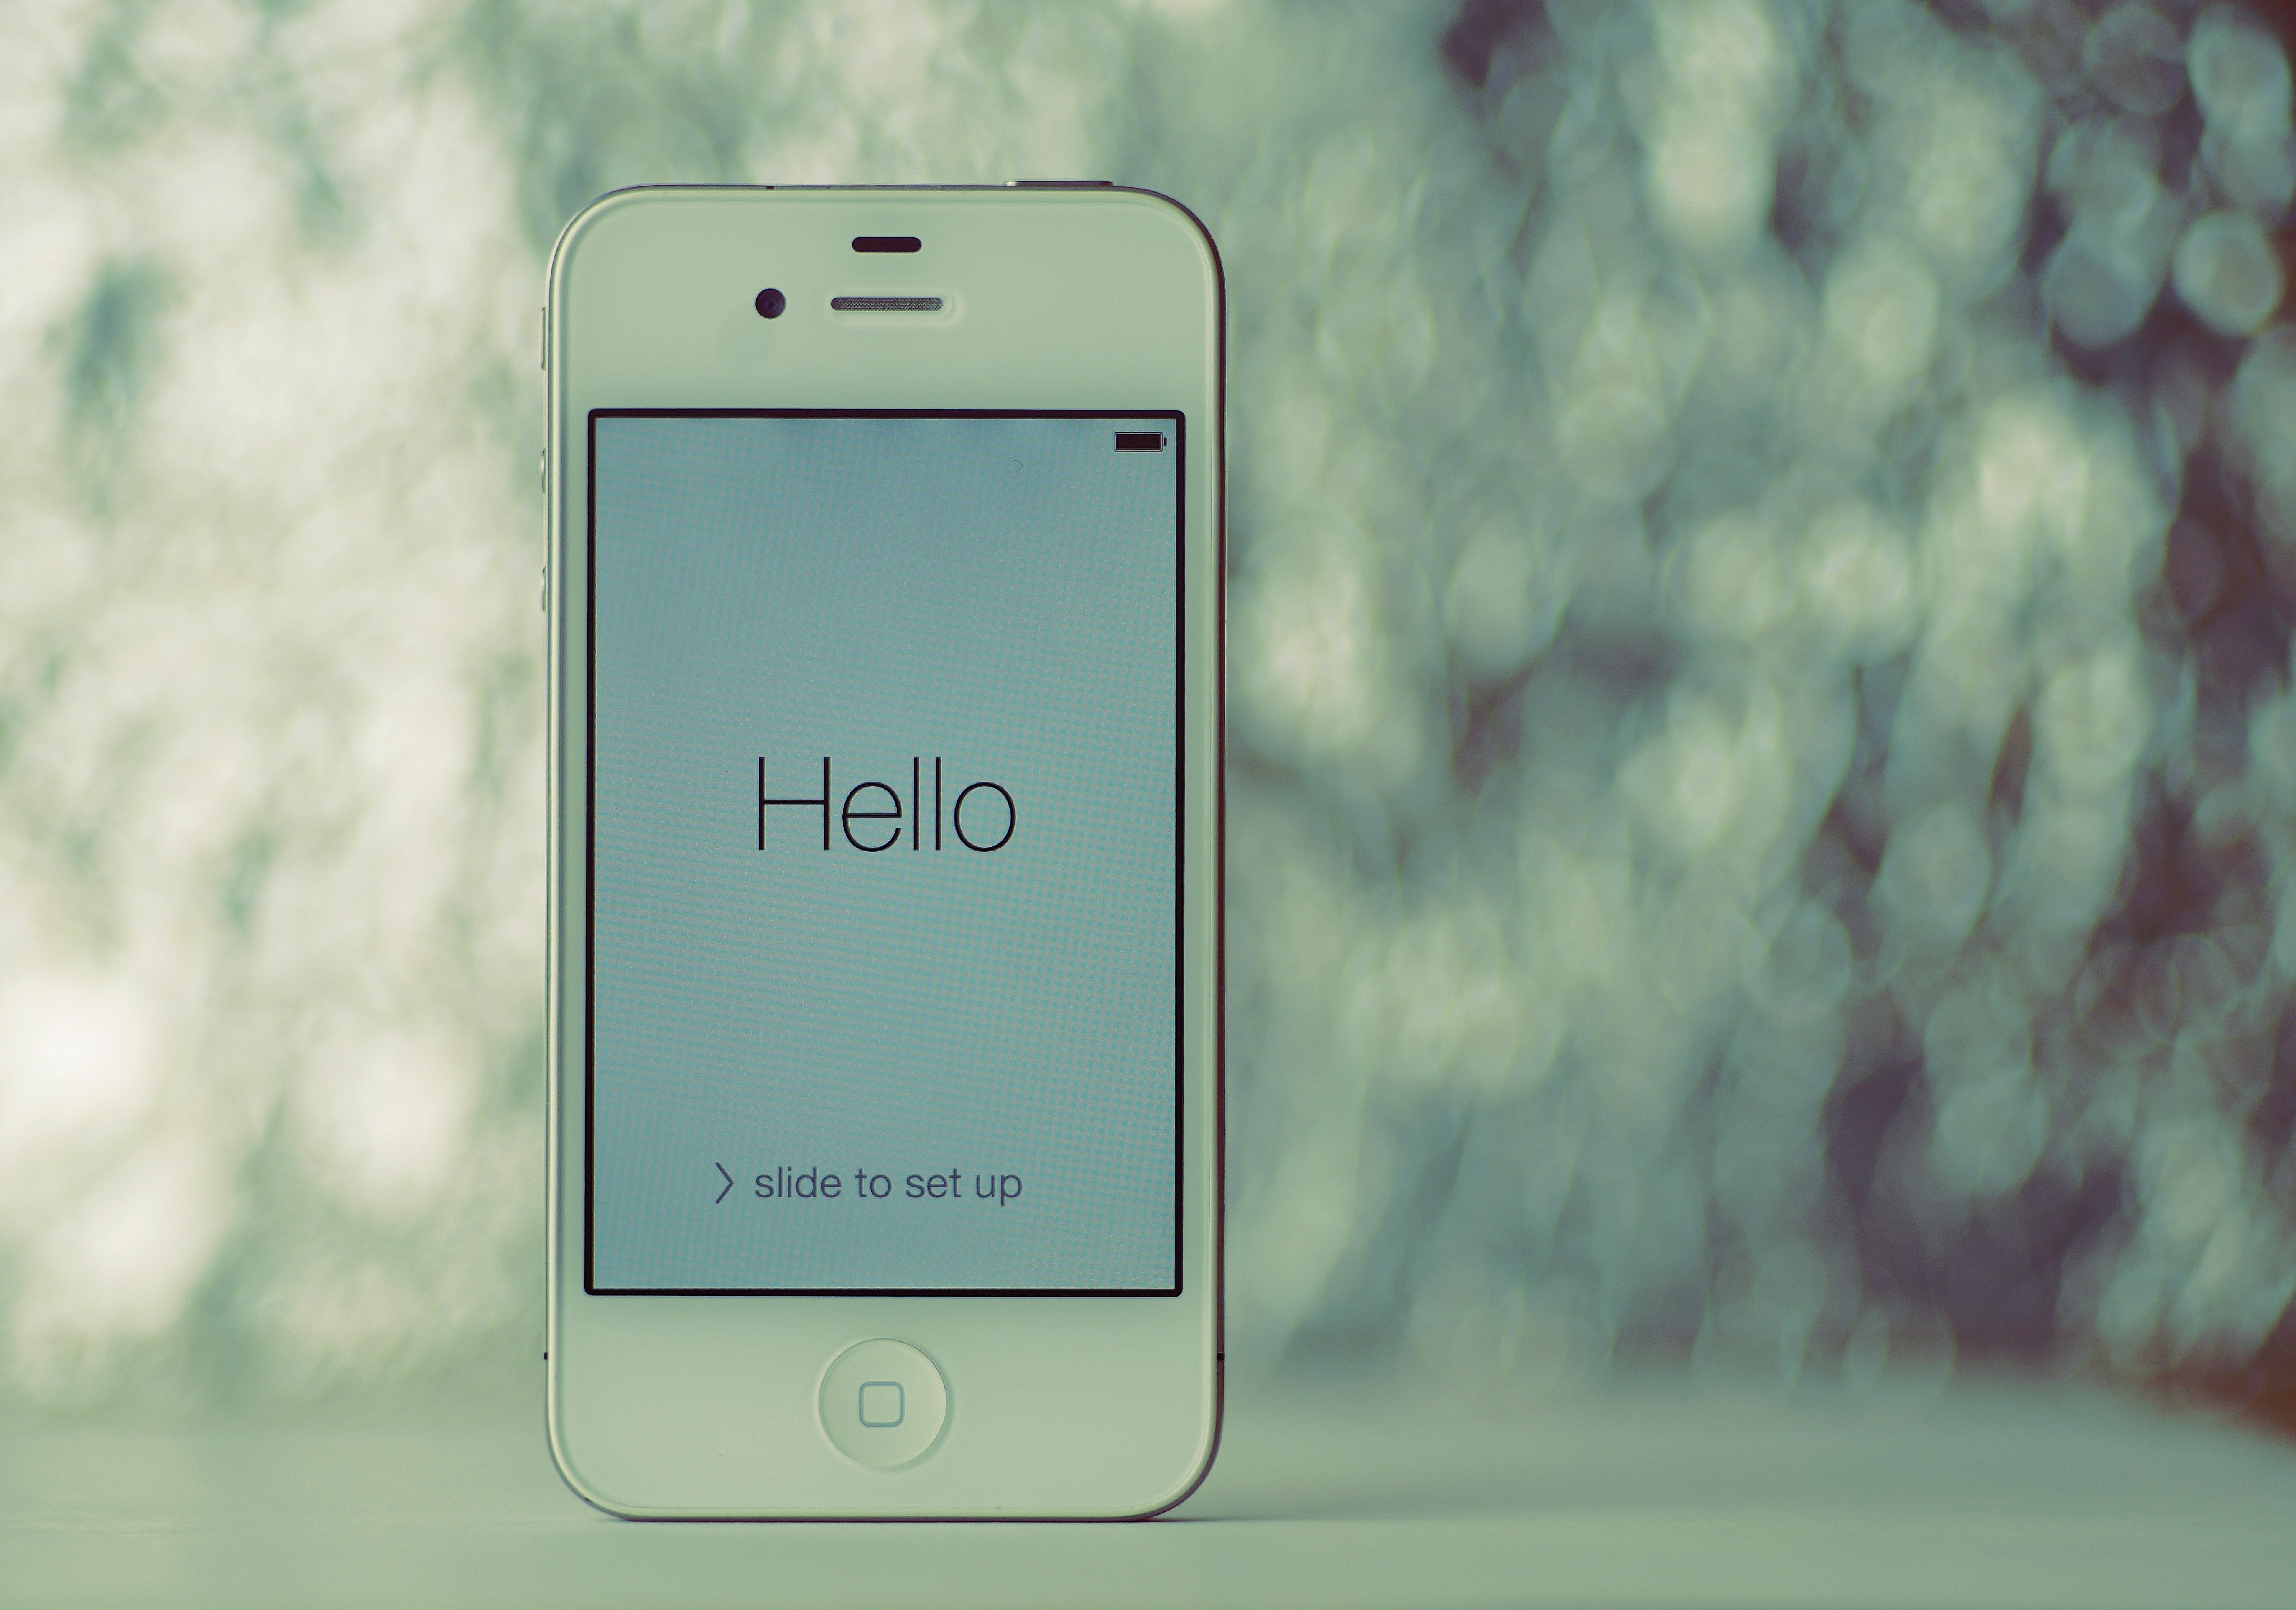 How chatbots are shaping on-demand service apps